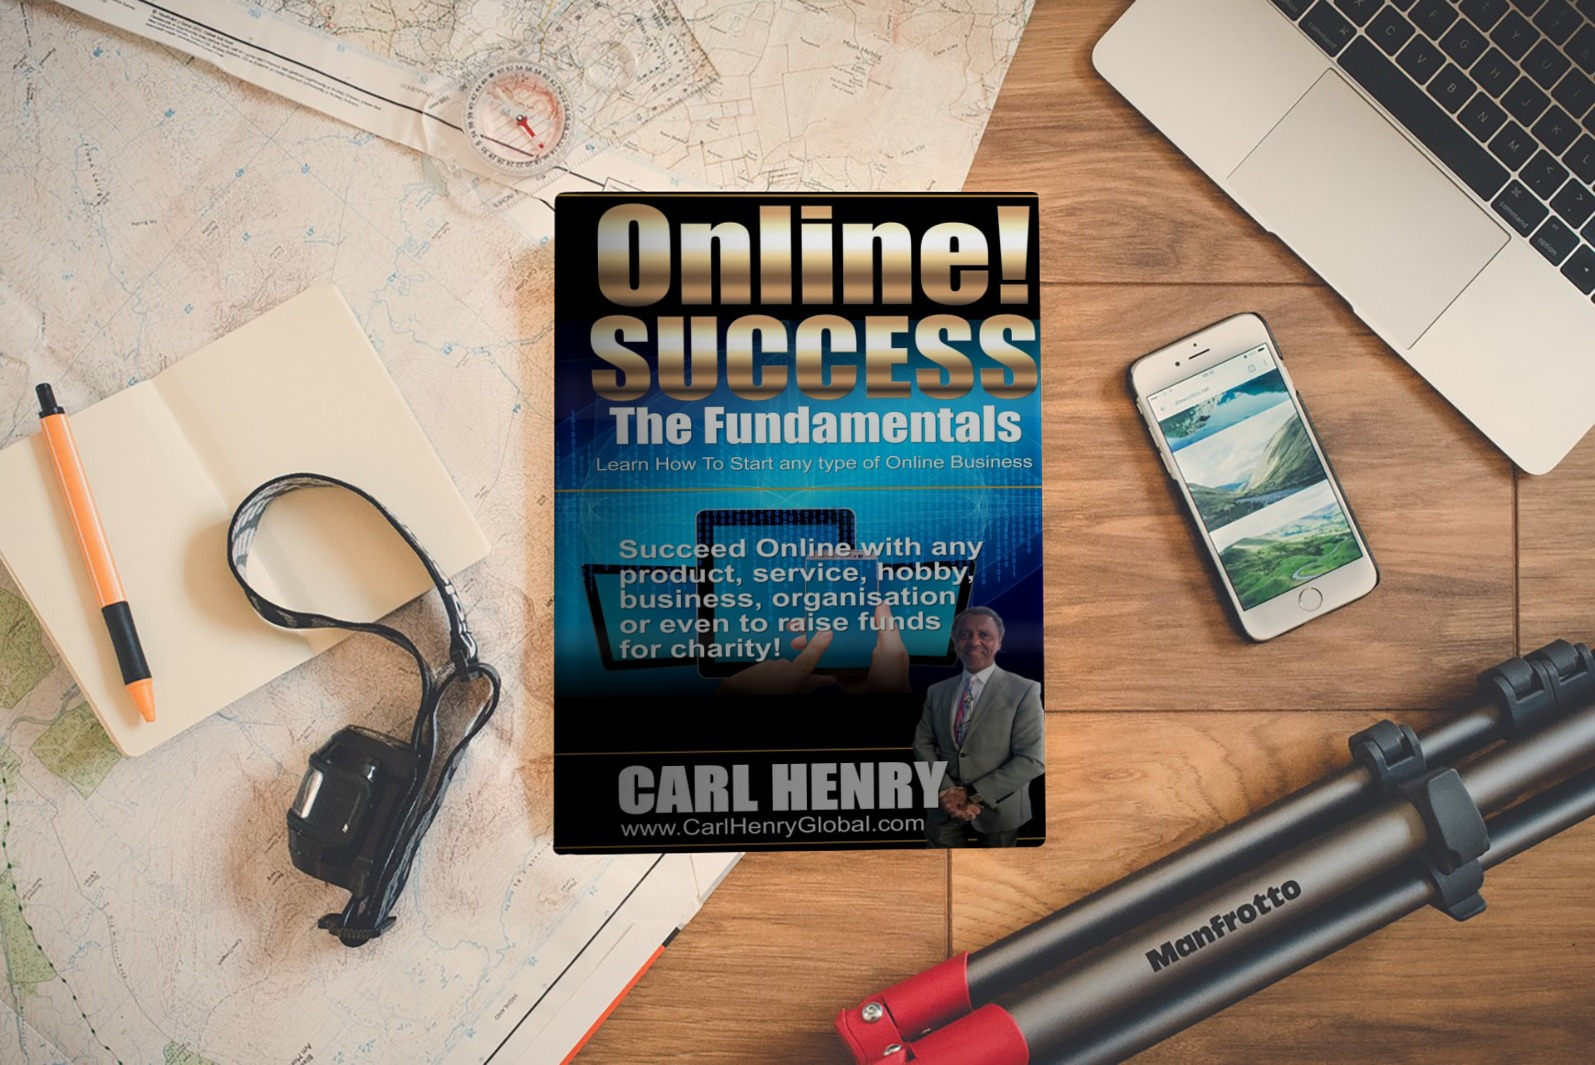 Carl-Henry-ONLINE-SUCCESS38.jpg